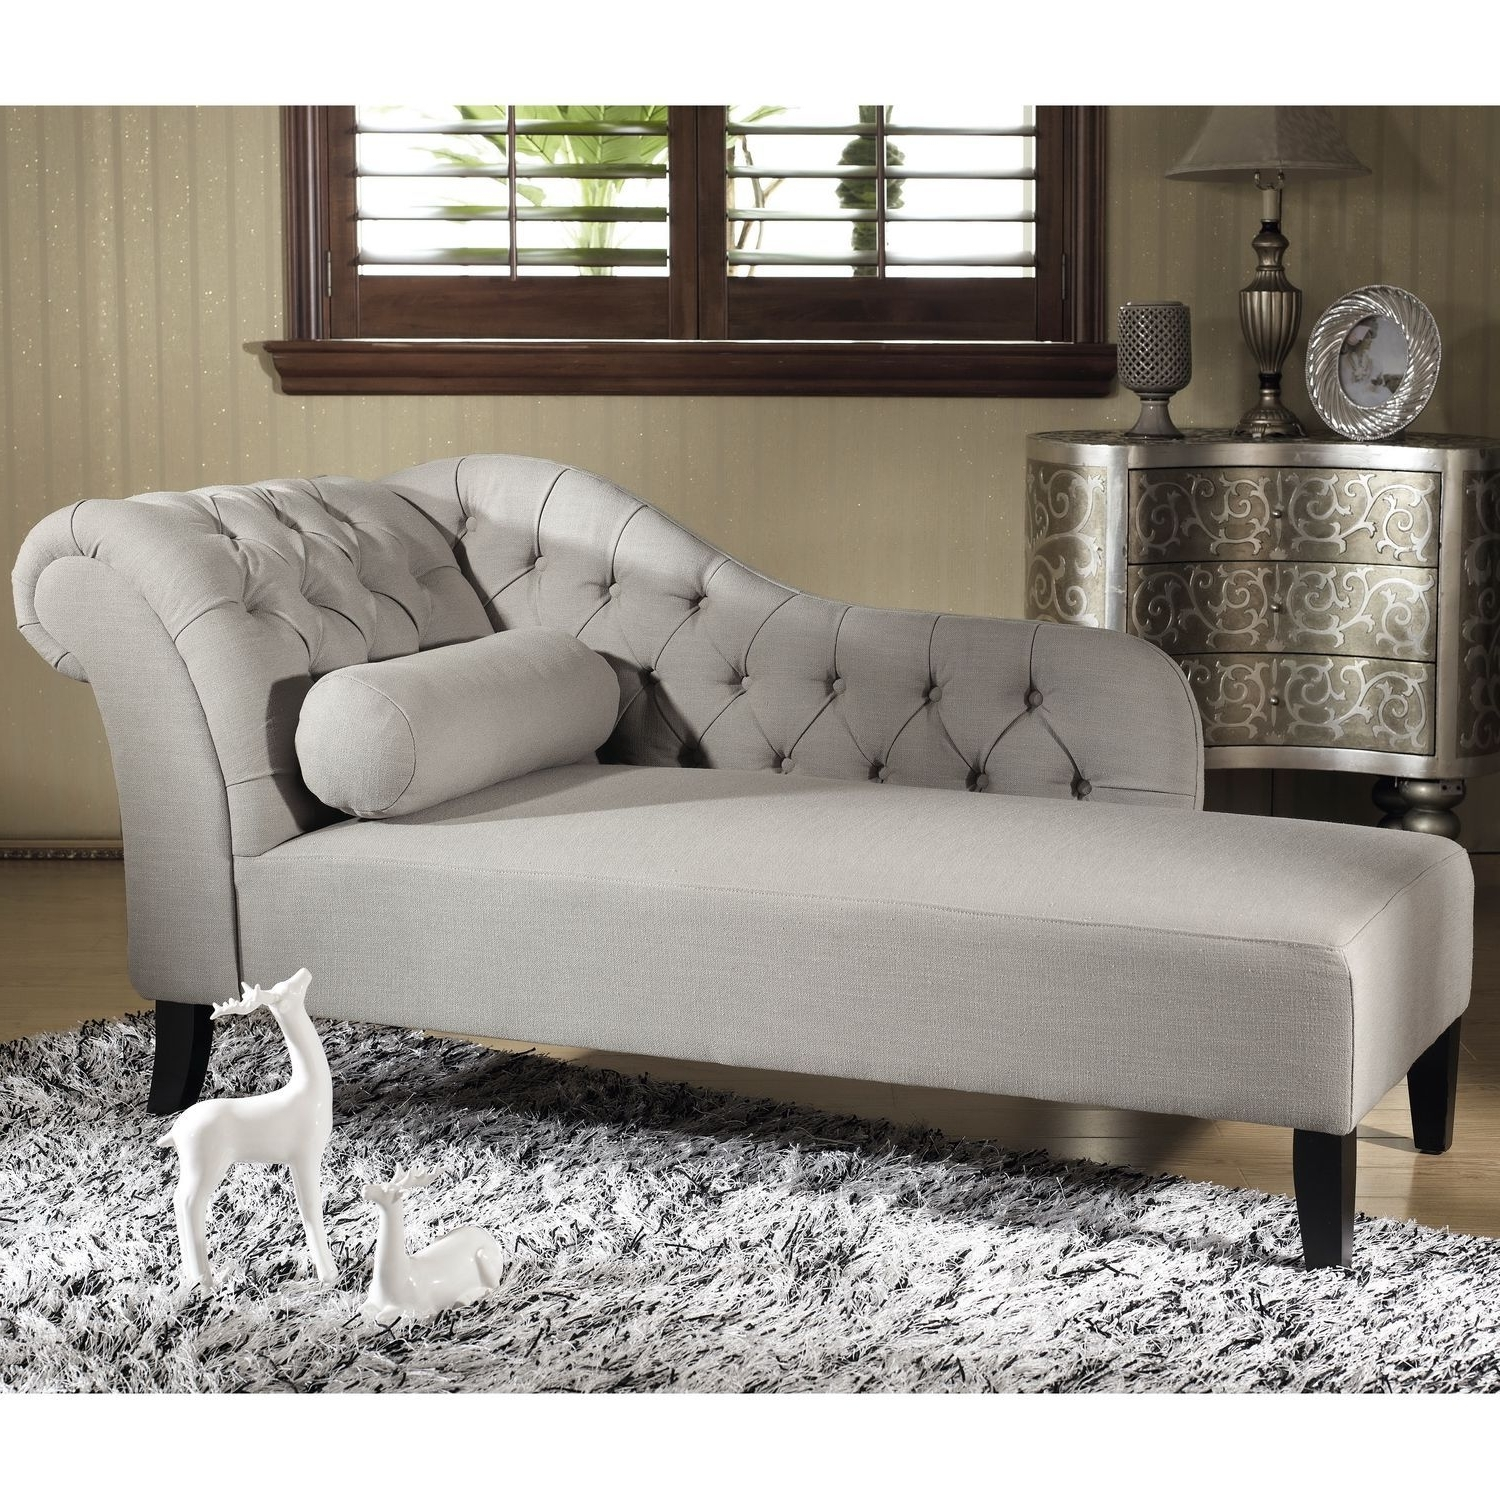 Trendy Overstock Chaise Lounges In Baxton Studio 'aphrodite' Tufted Putty Gray Linen Modern Chaise (View 13 of 15)